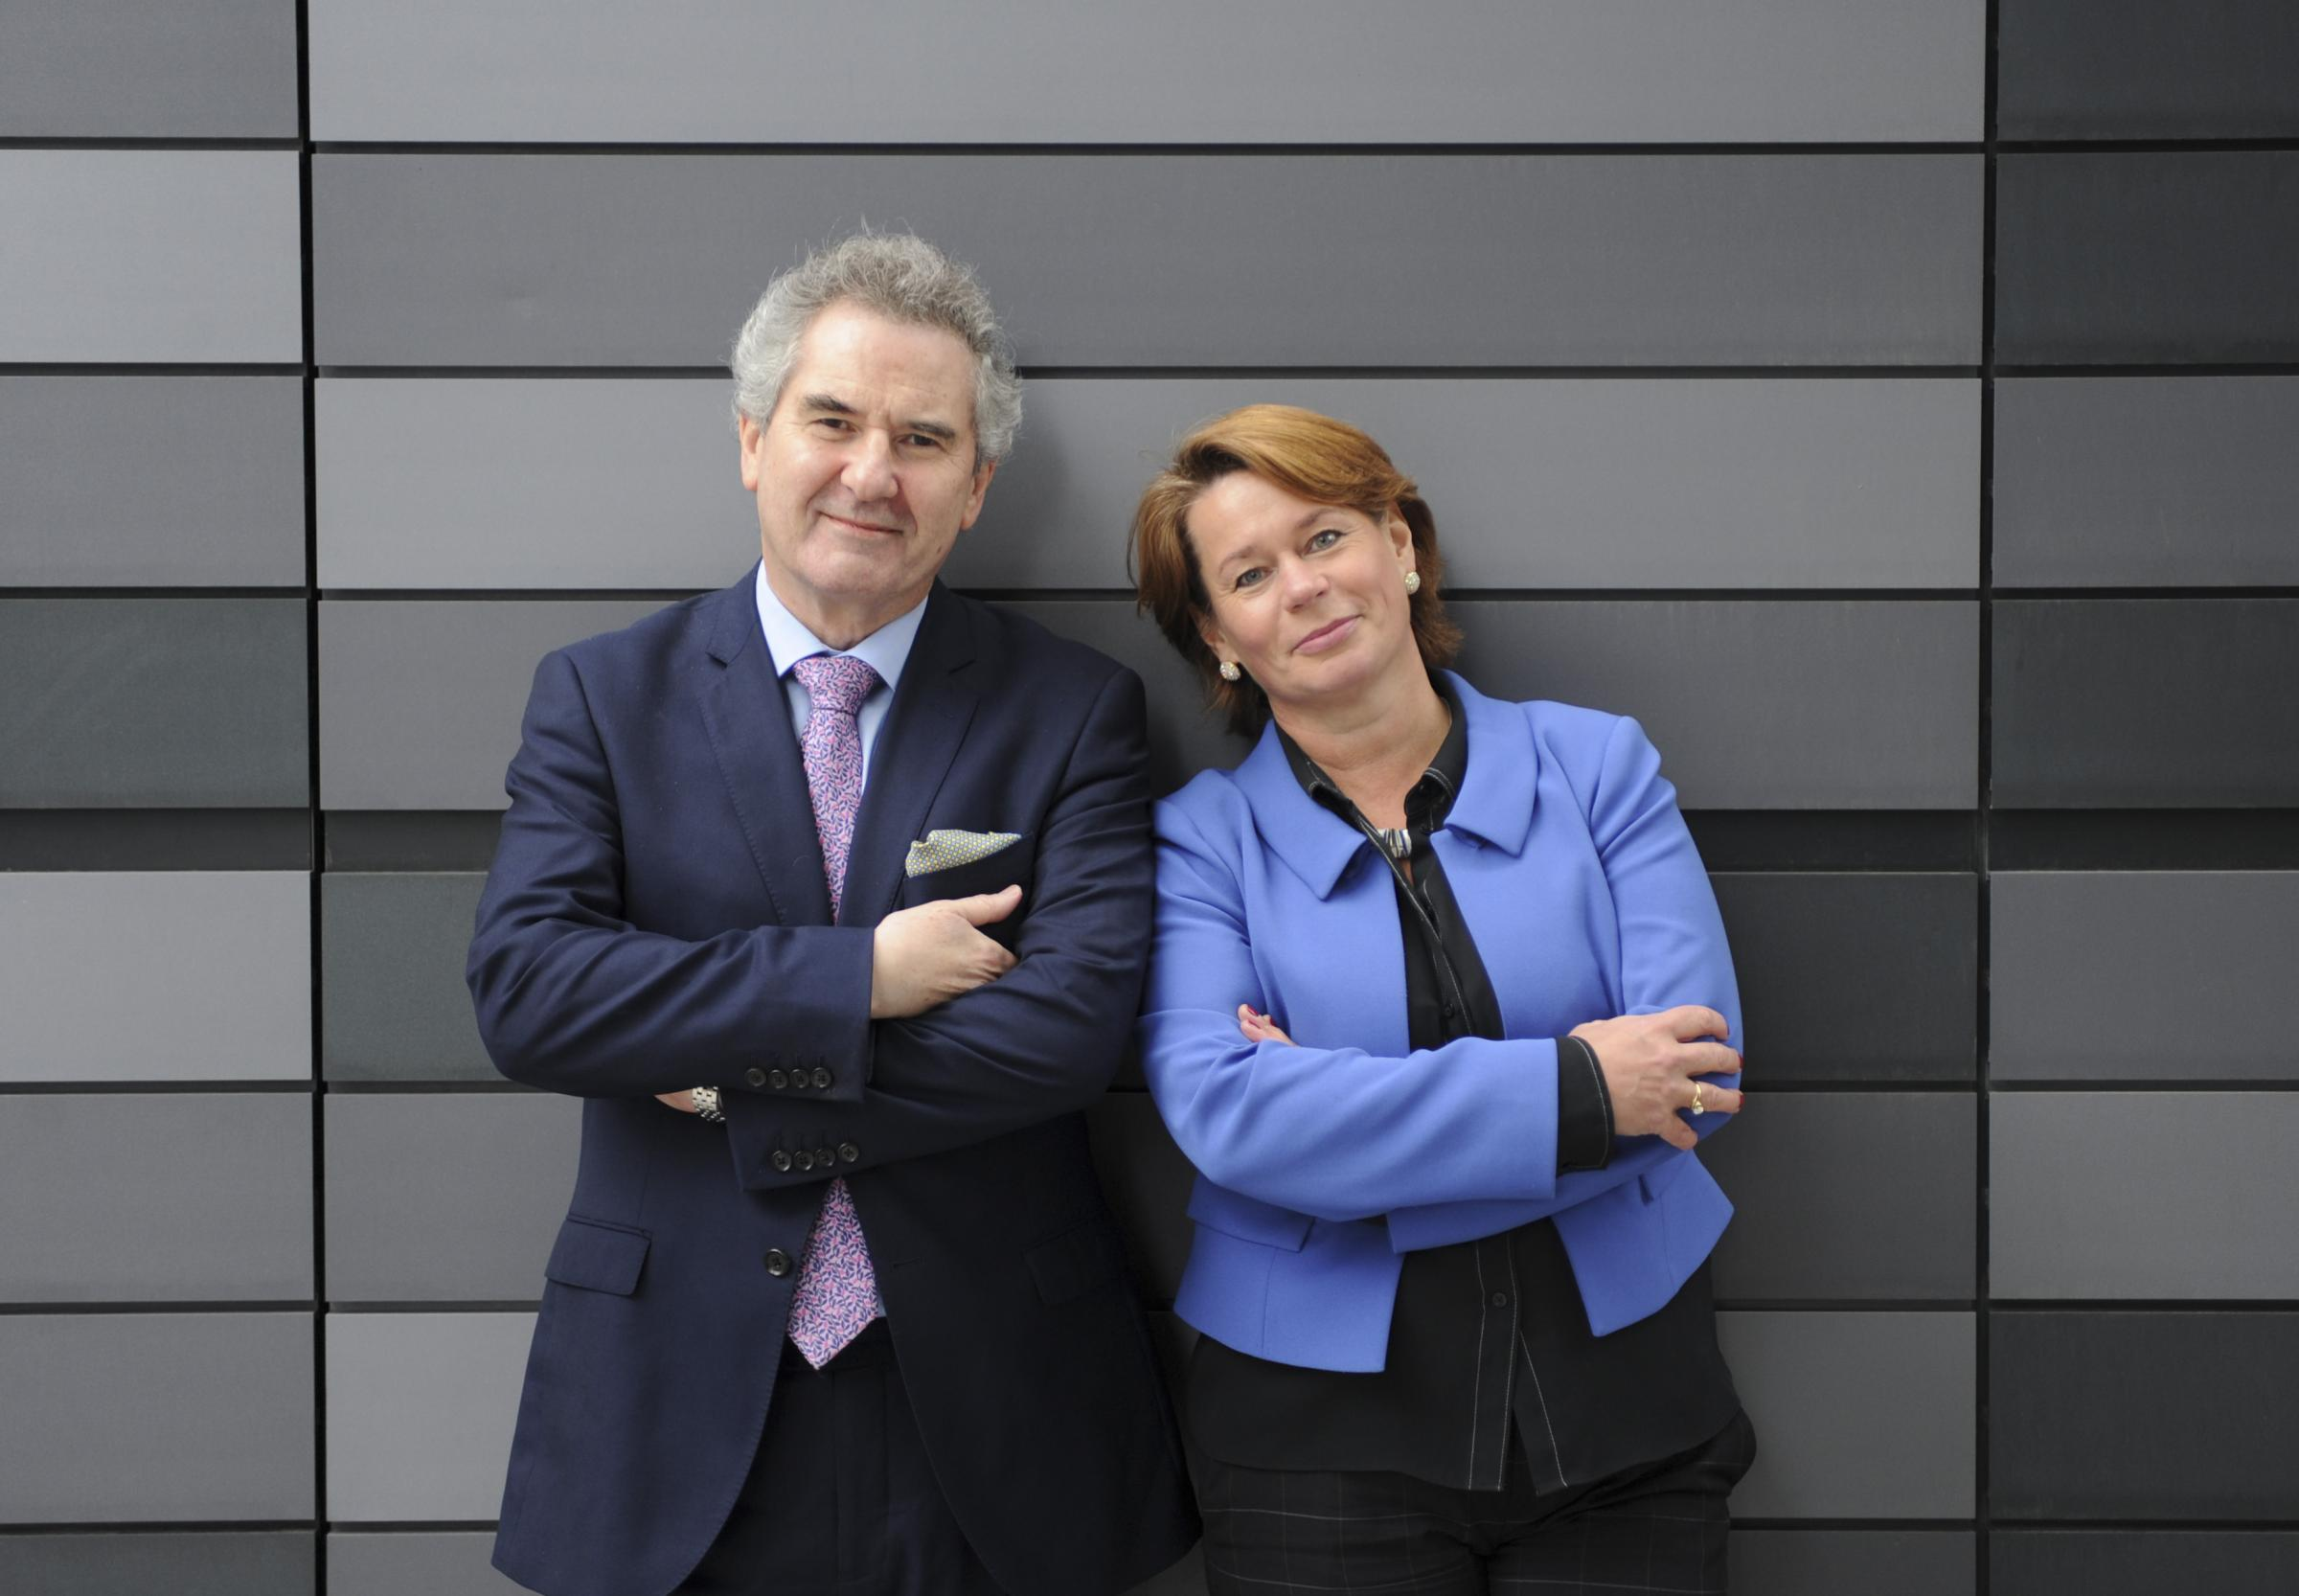 Former SNP MPs Roger Mullin and Michelle Thomson